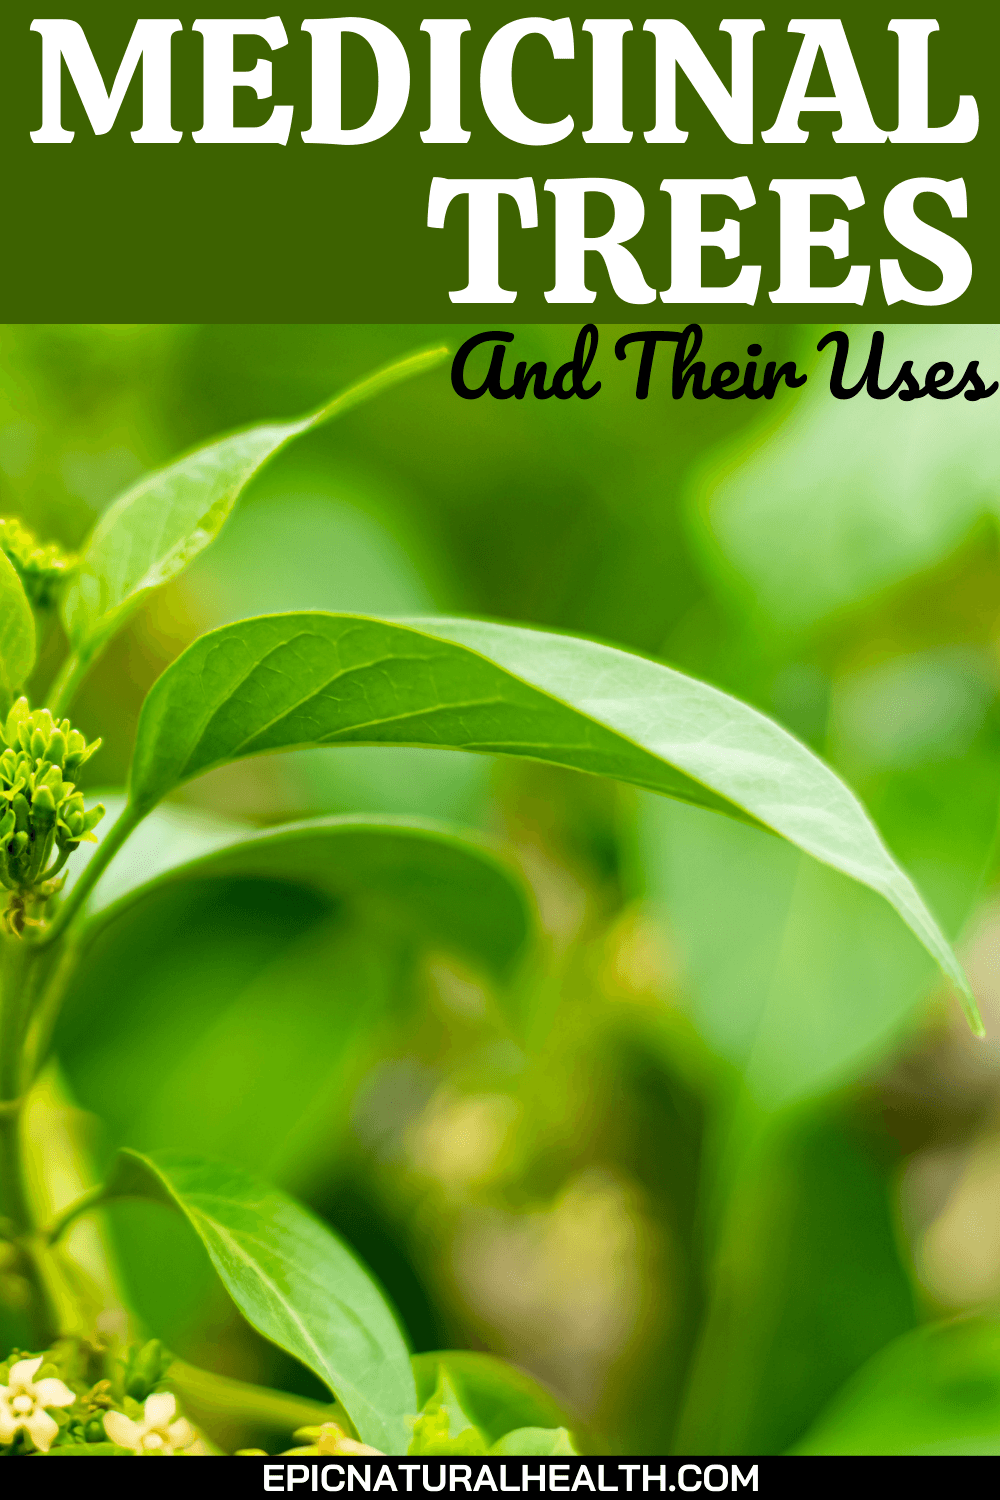 Medicinal trees and their uses